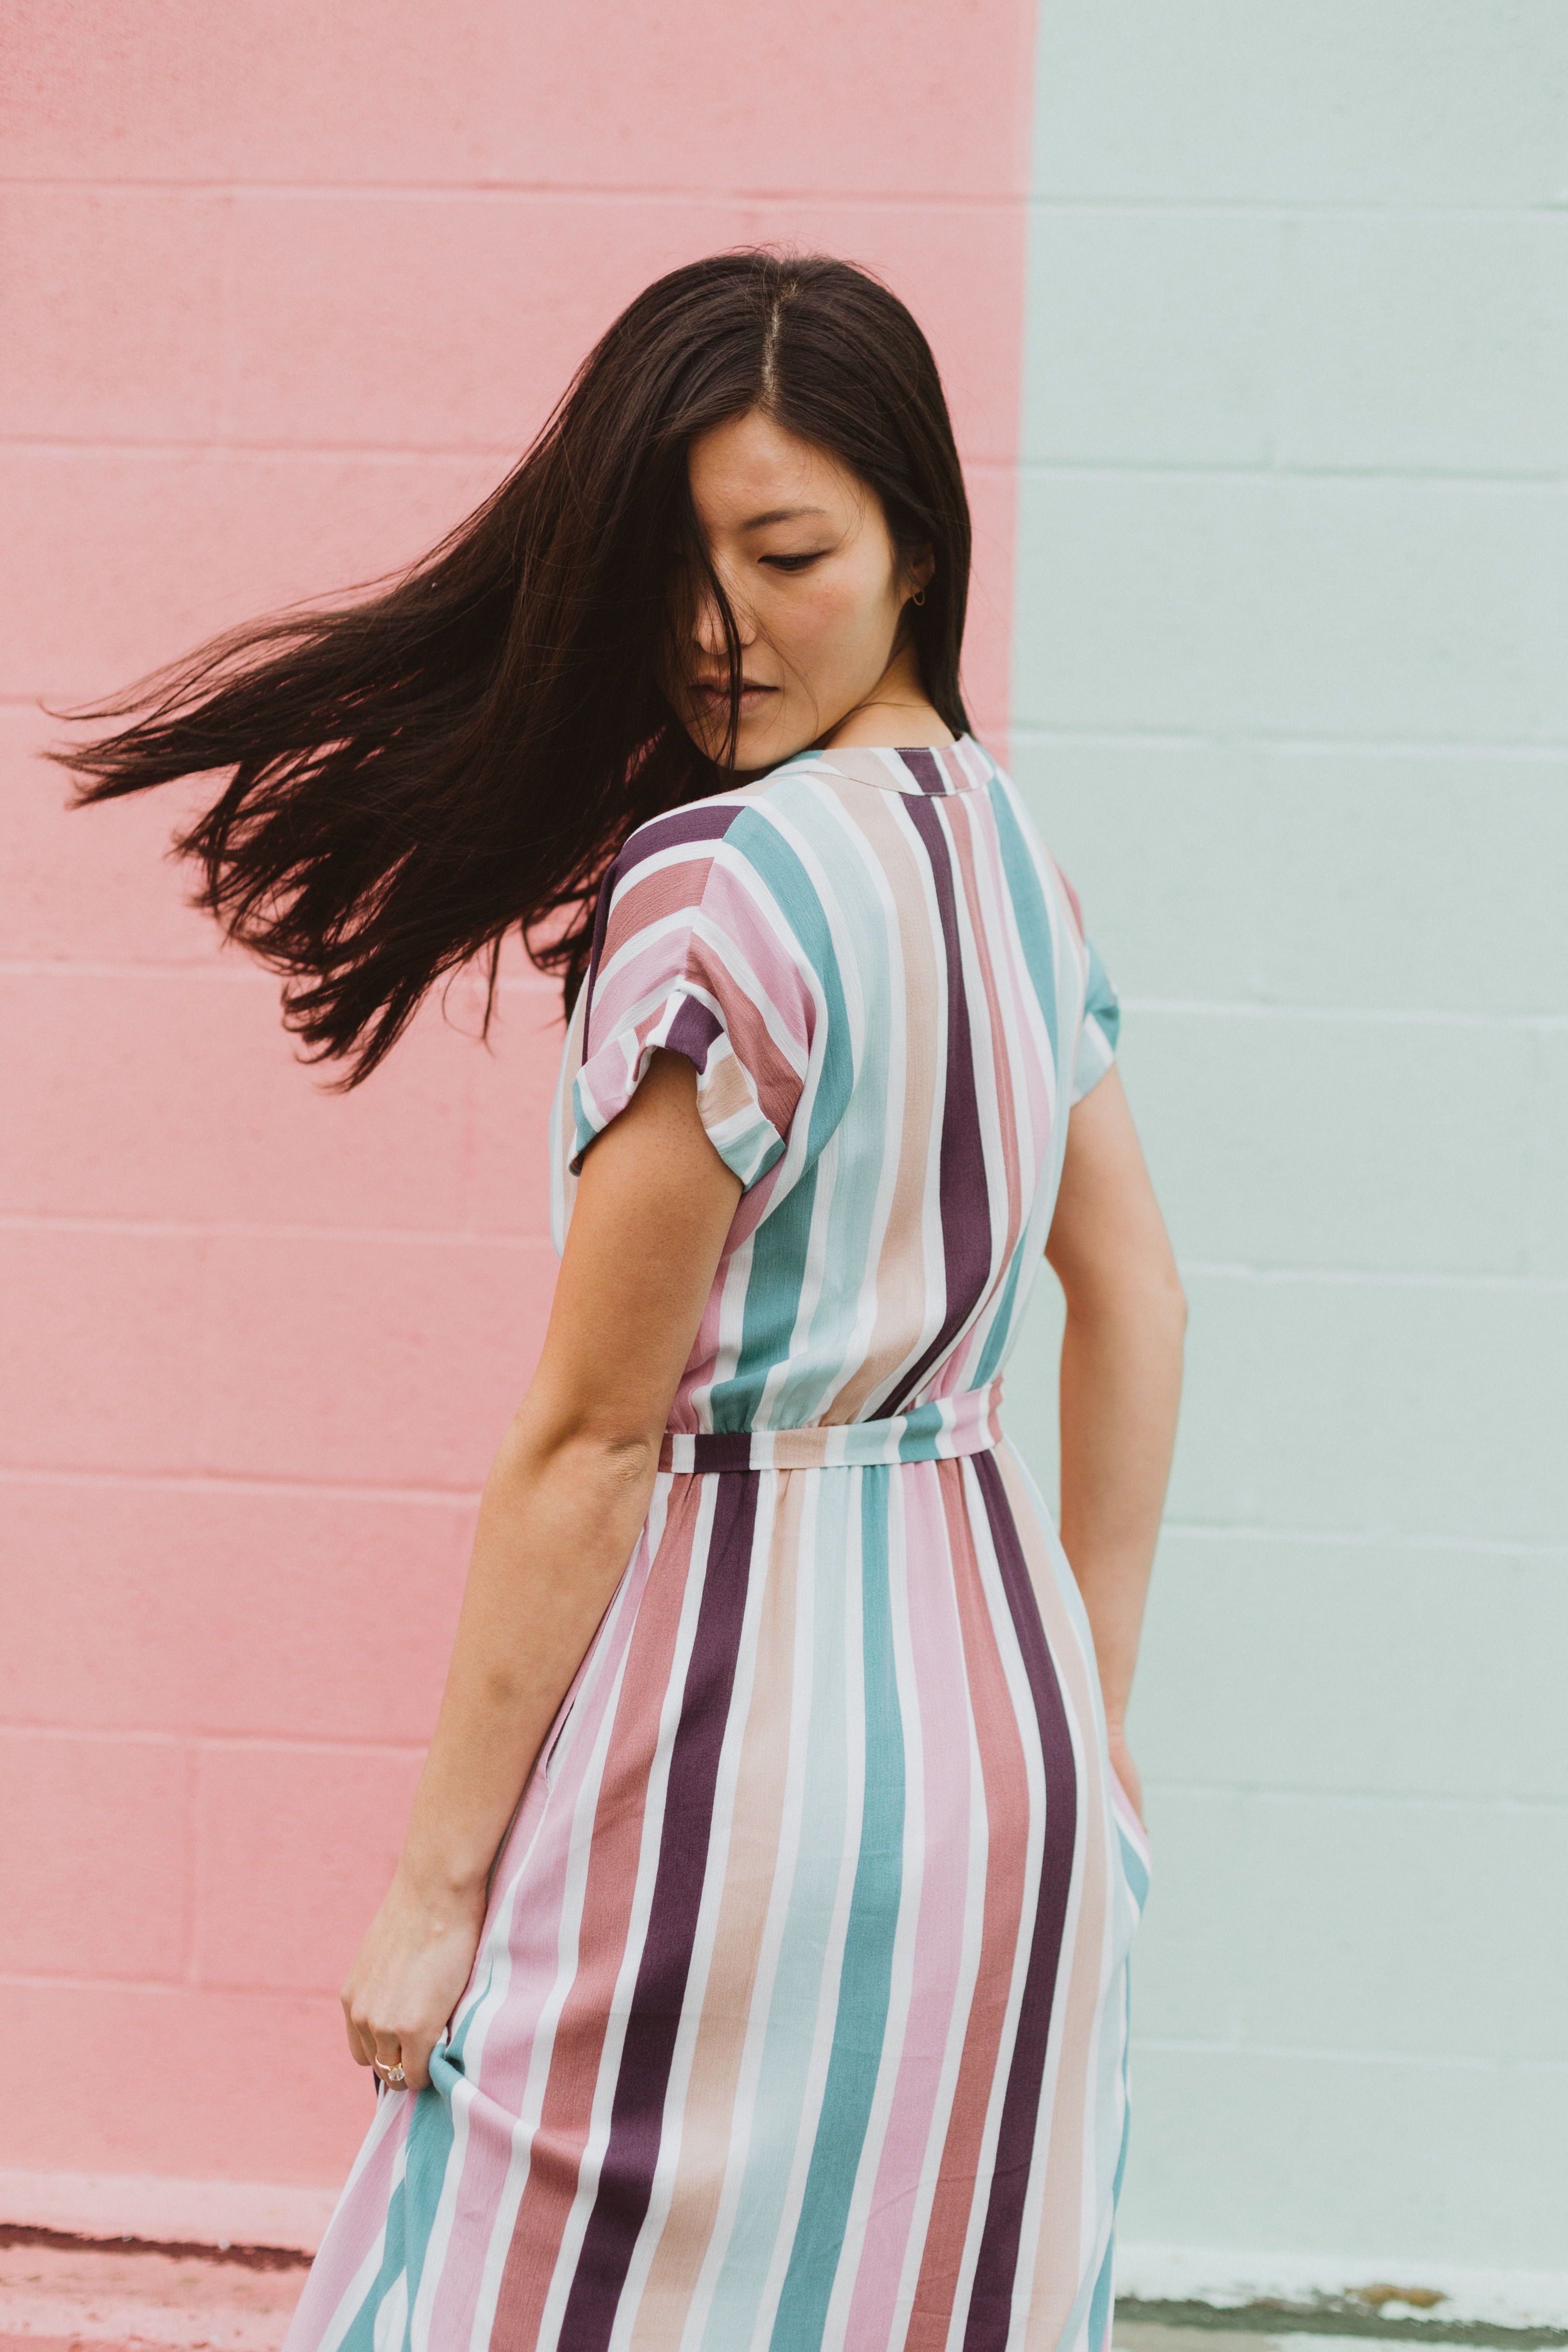 The Cha Cha Striped Maxi Dress Is As If All Your Favorite Things Came Together As A Dress It Is Nursing Frien Maxi Styles Striped Maxi Dresses Fashion Dresses [ 4500 x 3000 Pixel ]